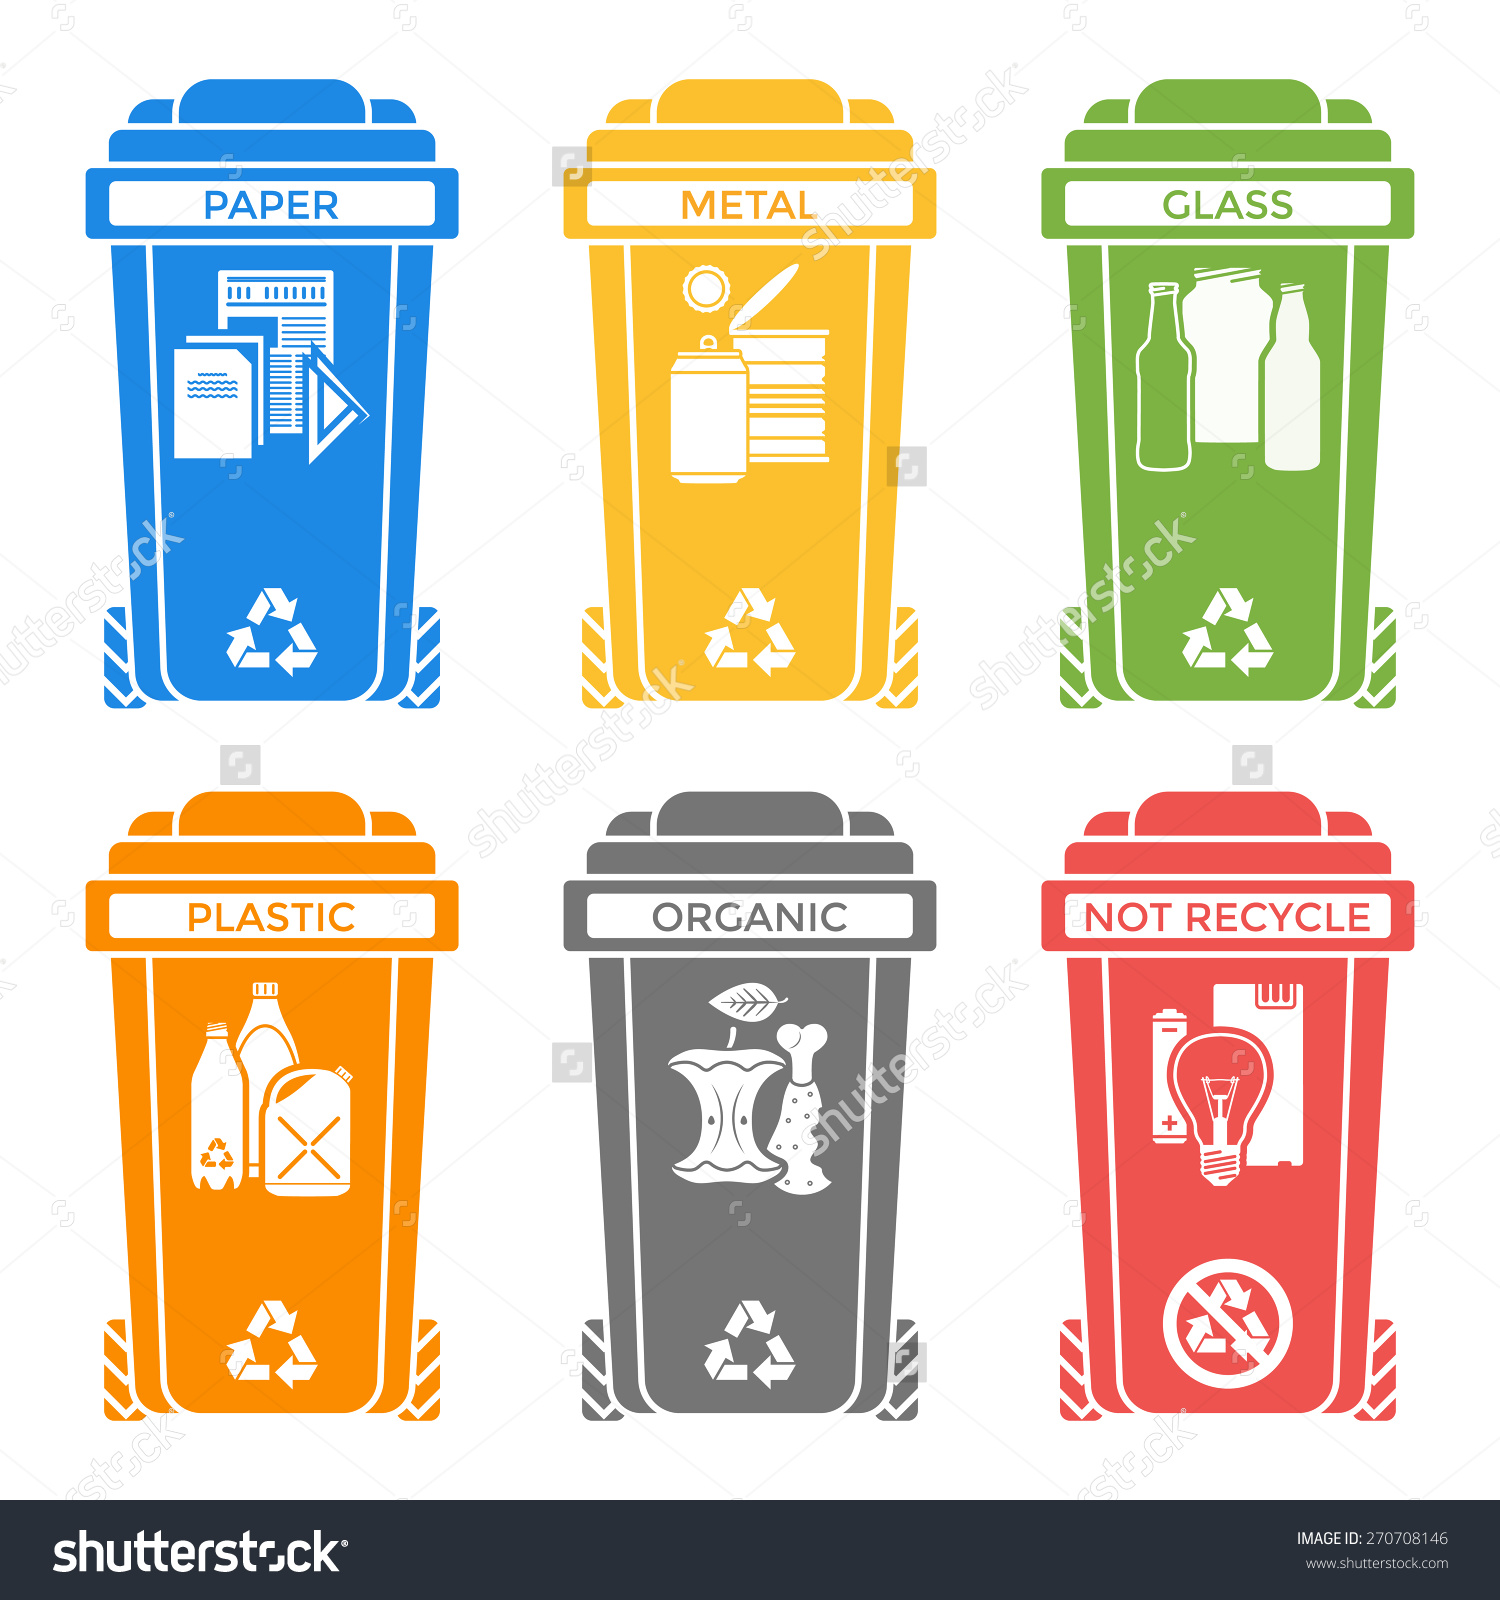 Vector Various Colors Separated Recycle Waste Stock Vector.